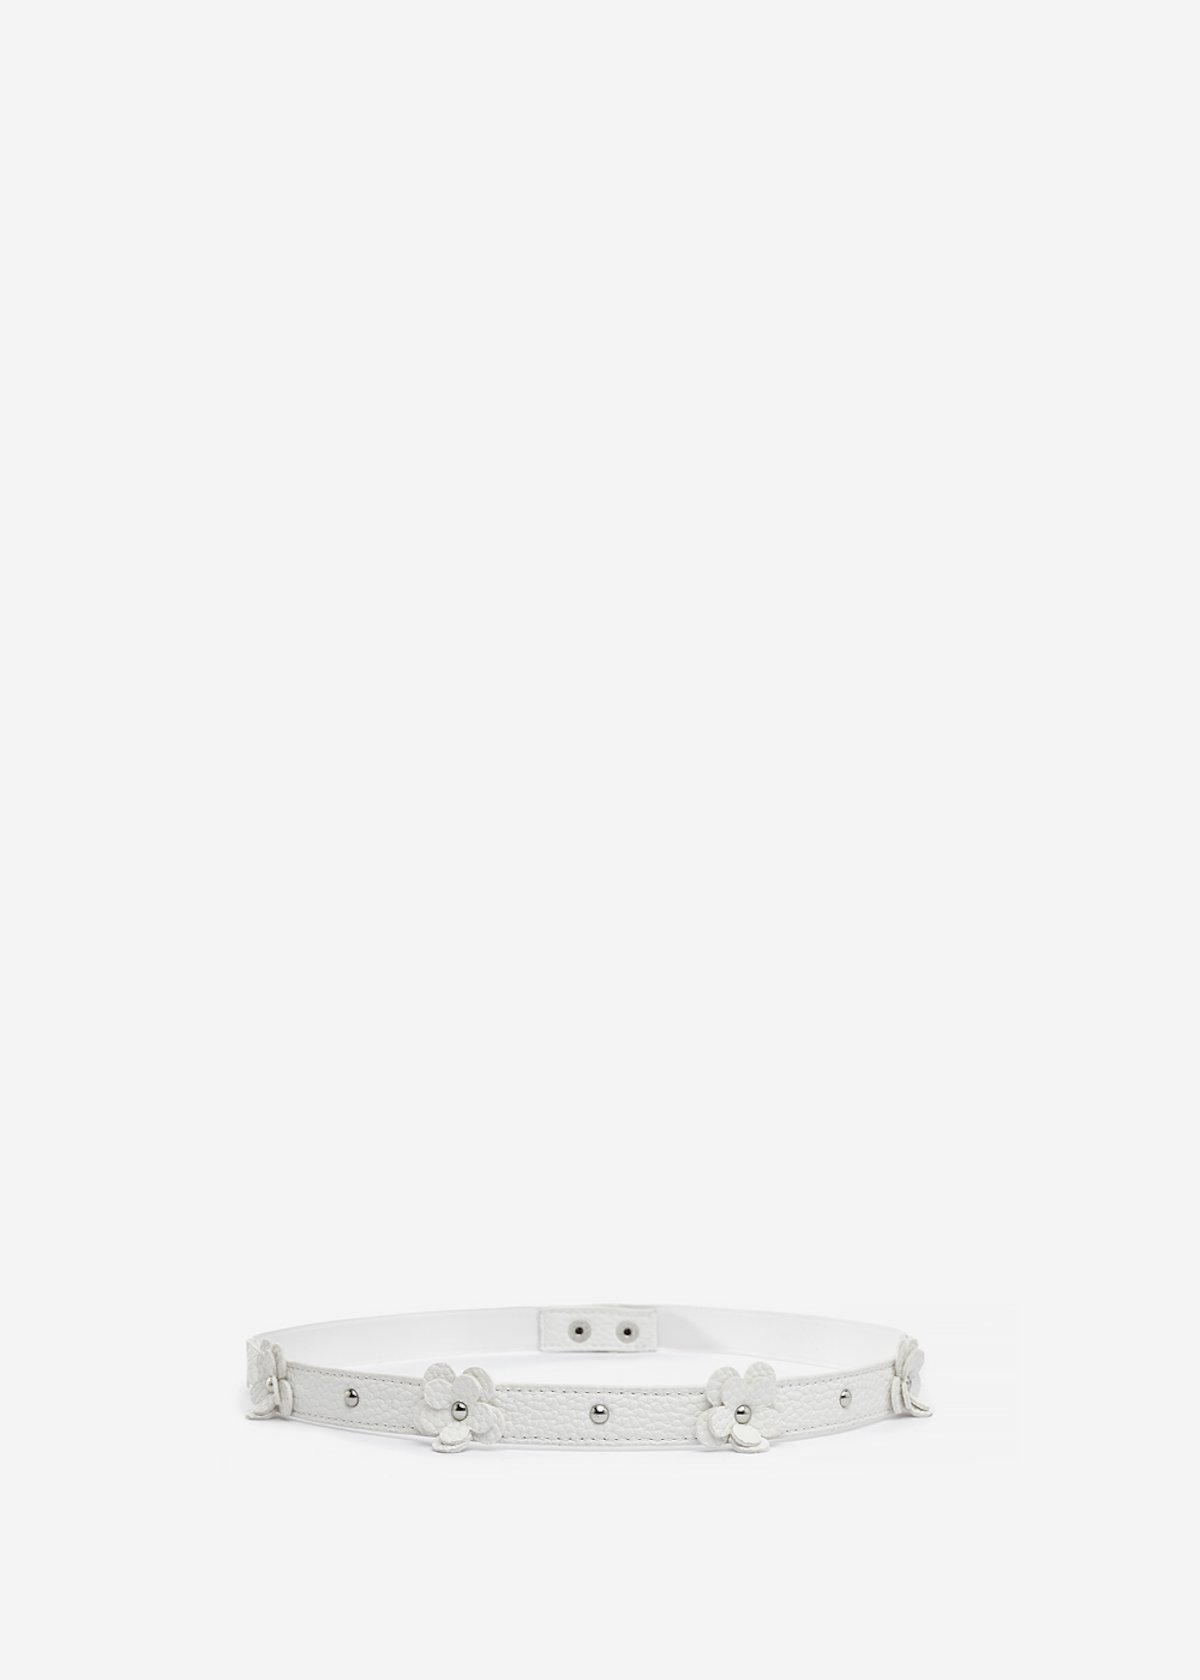 Faux-leather belt Clea with floral applications - Bianco